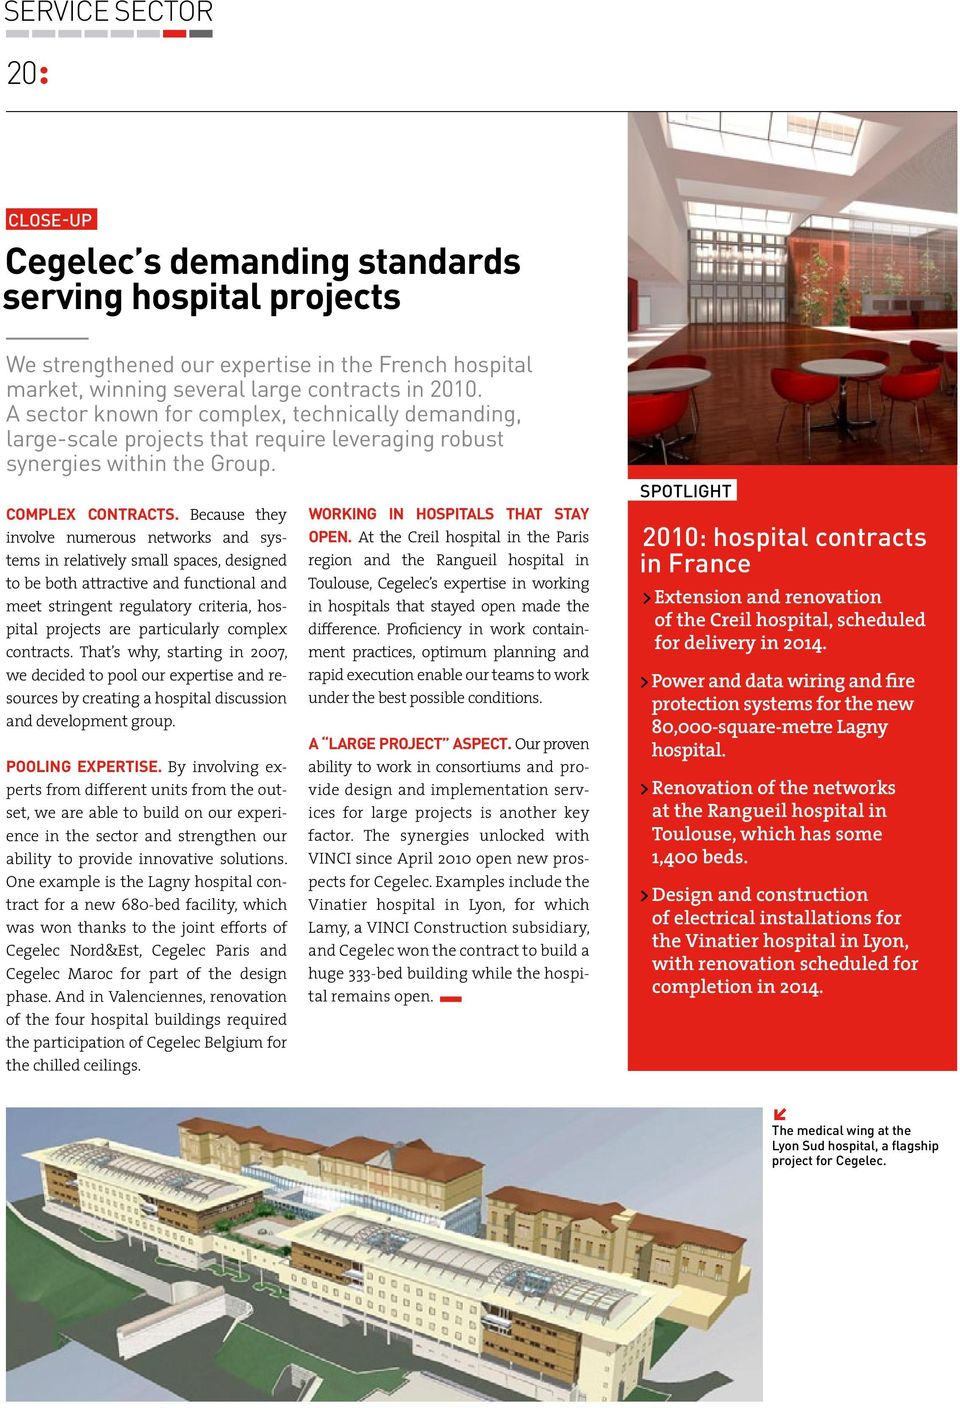 Because they involve numerous networks and systems in relatively small spaces, designed to be both attractive and functional and meet stringent regulatory criteria, hospital projects are particularly